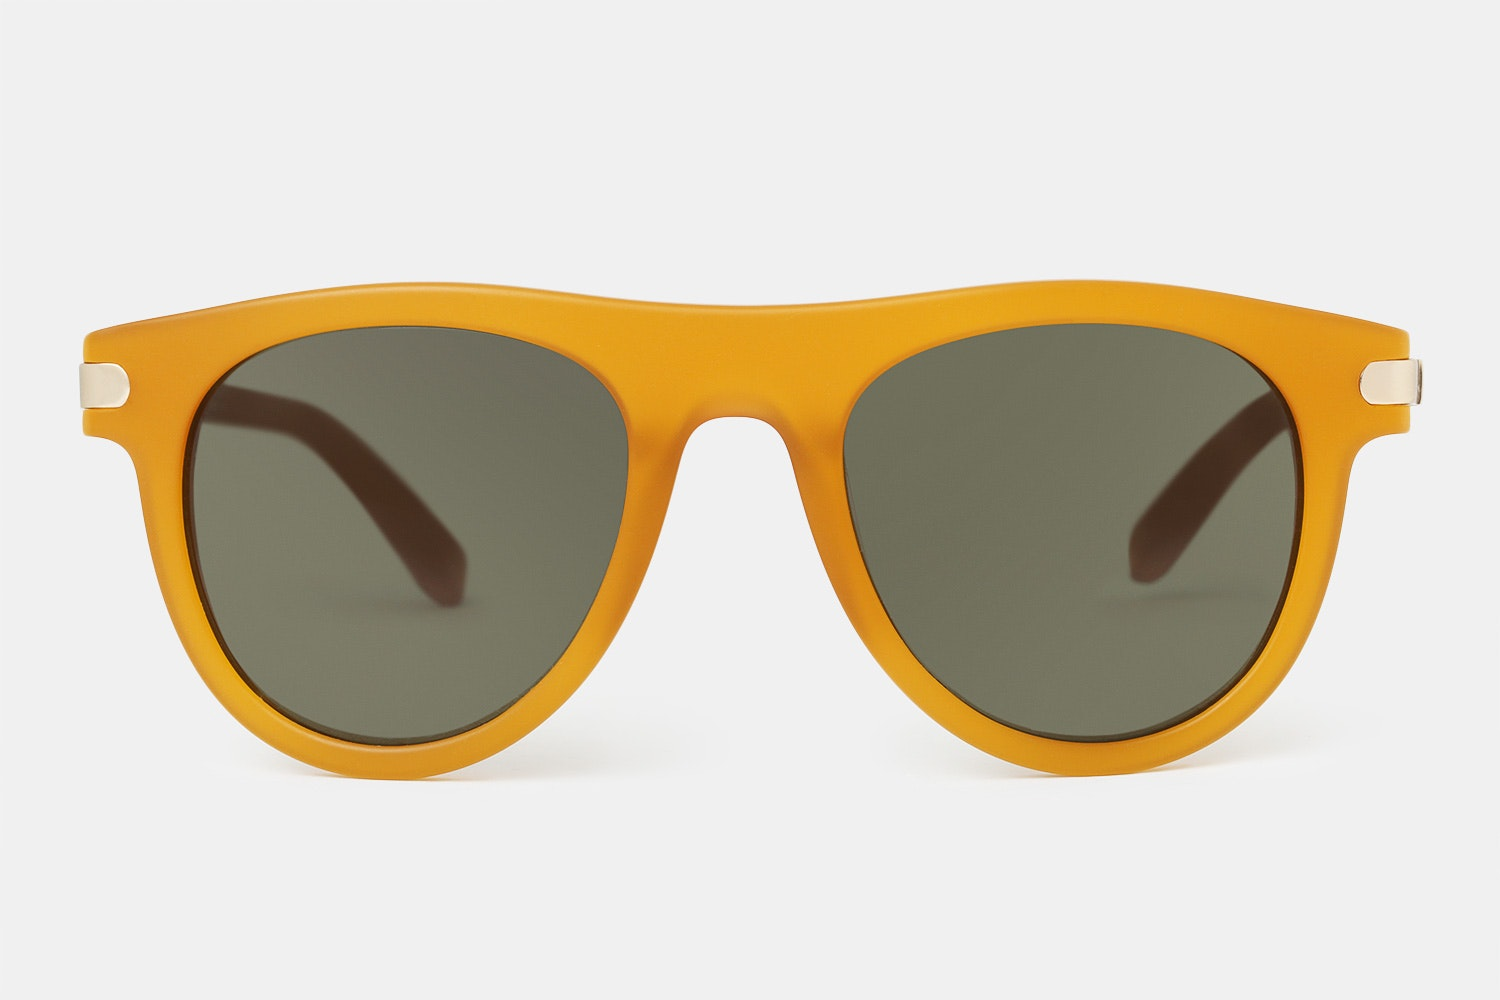 Matte butterscotch yellow frame with gray-green lenses